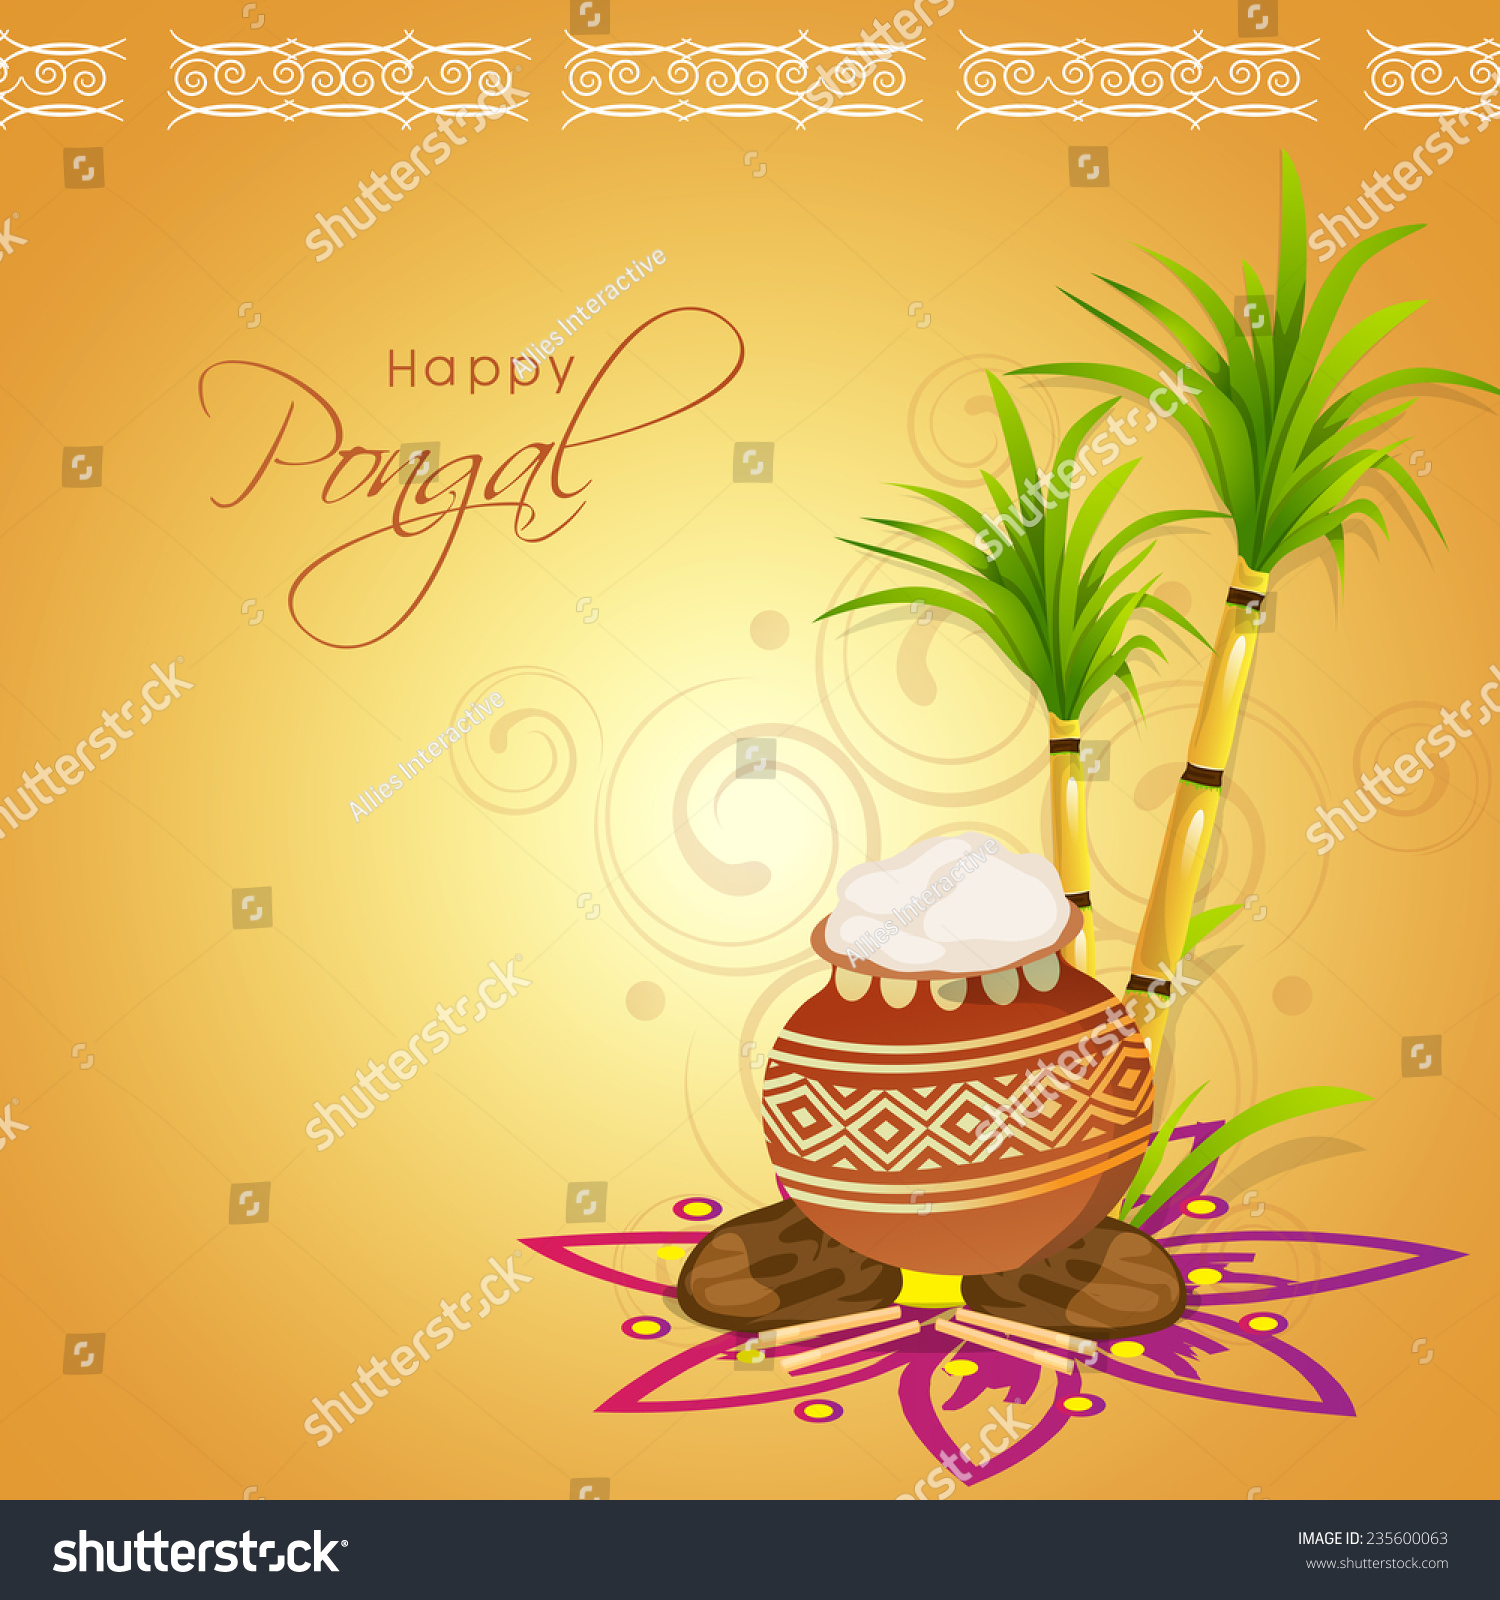 how to make pongal in tamil